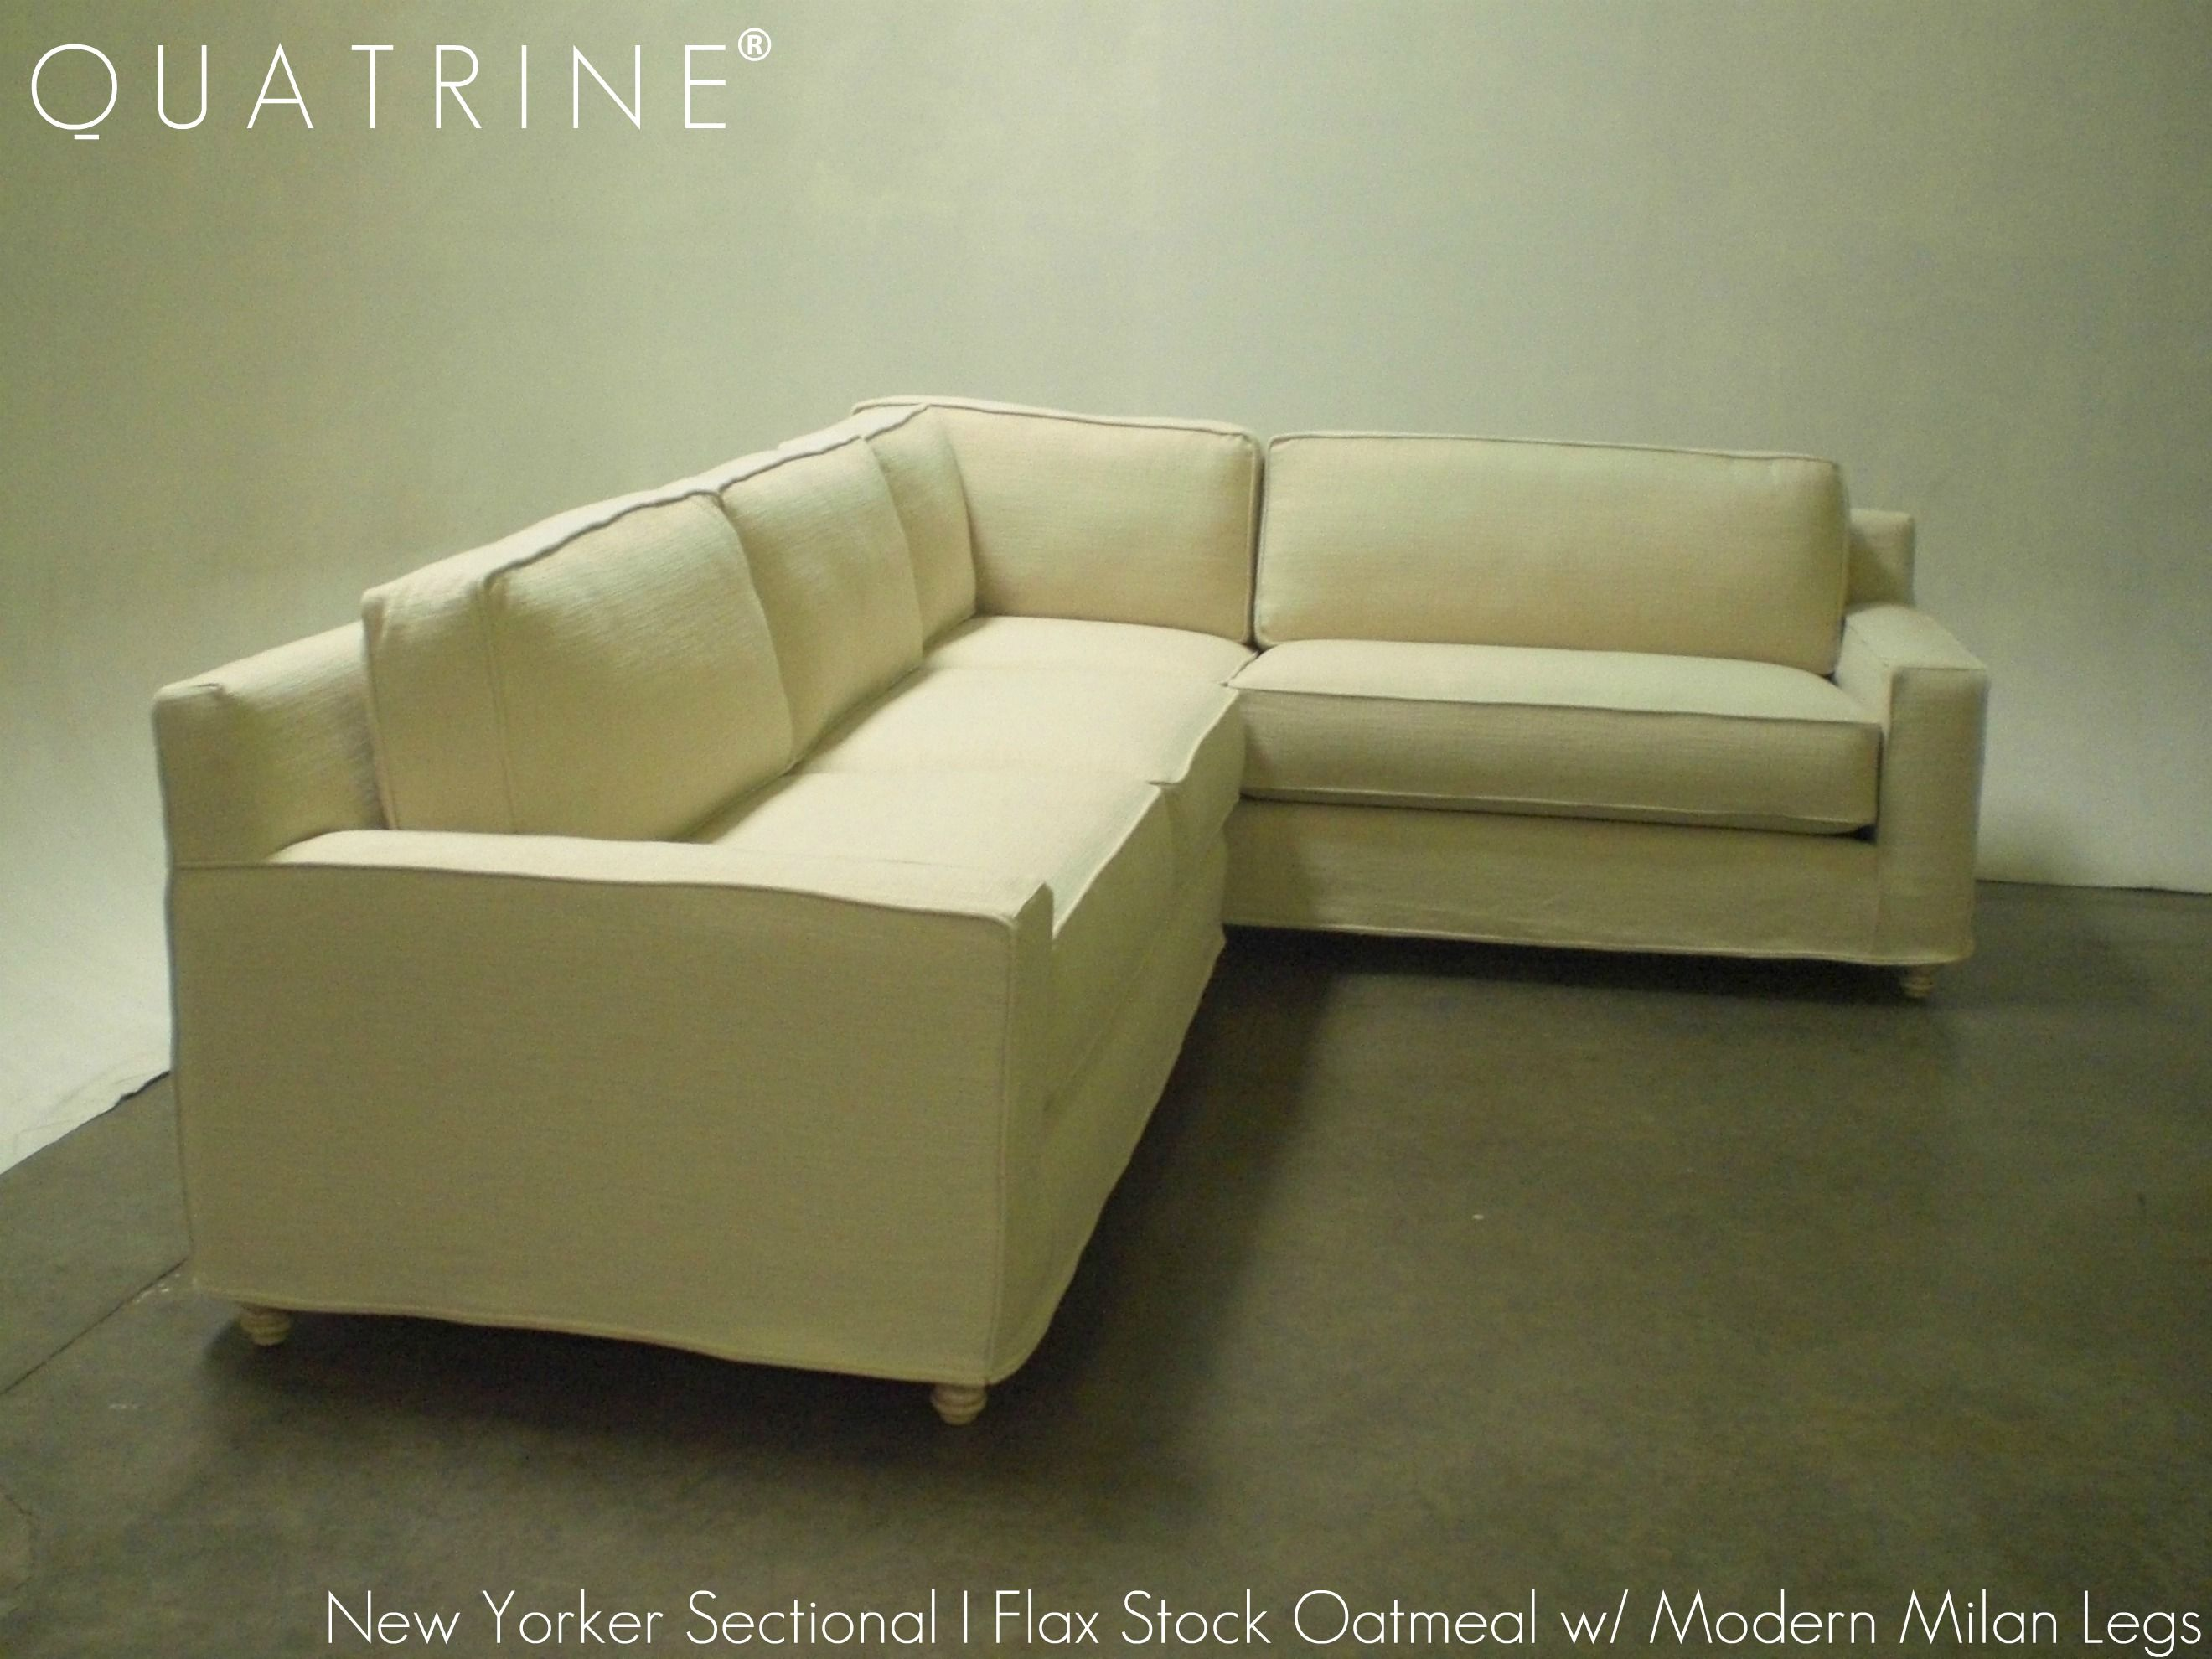 curved furniture collection leather images ikea outstanding the semi sofa of chair swivel living circle store for club sofas couch sams room